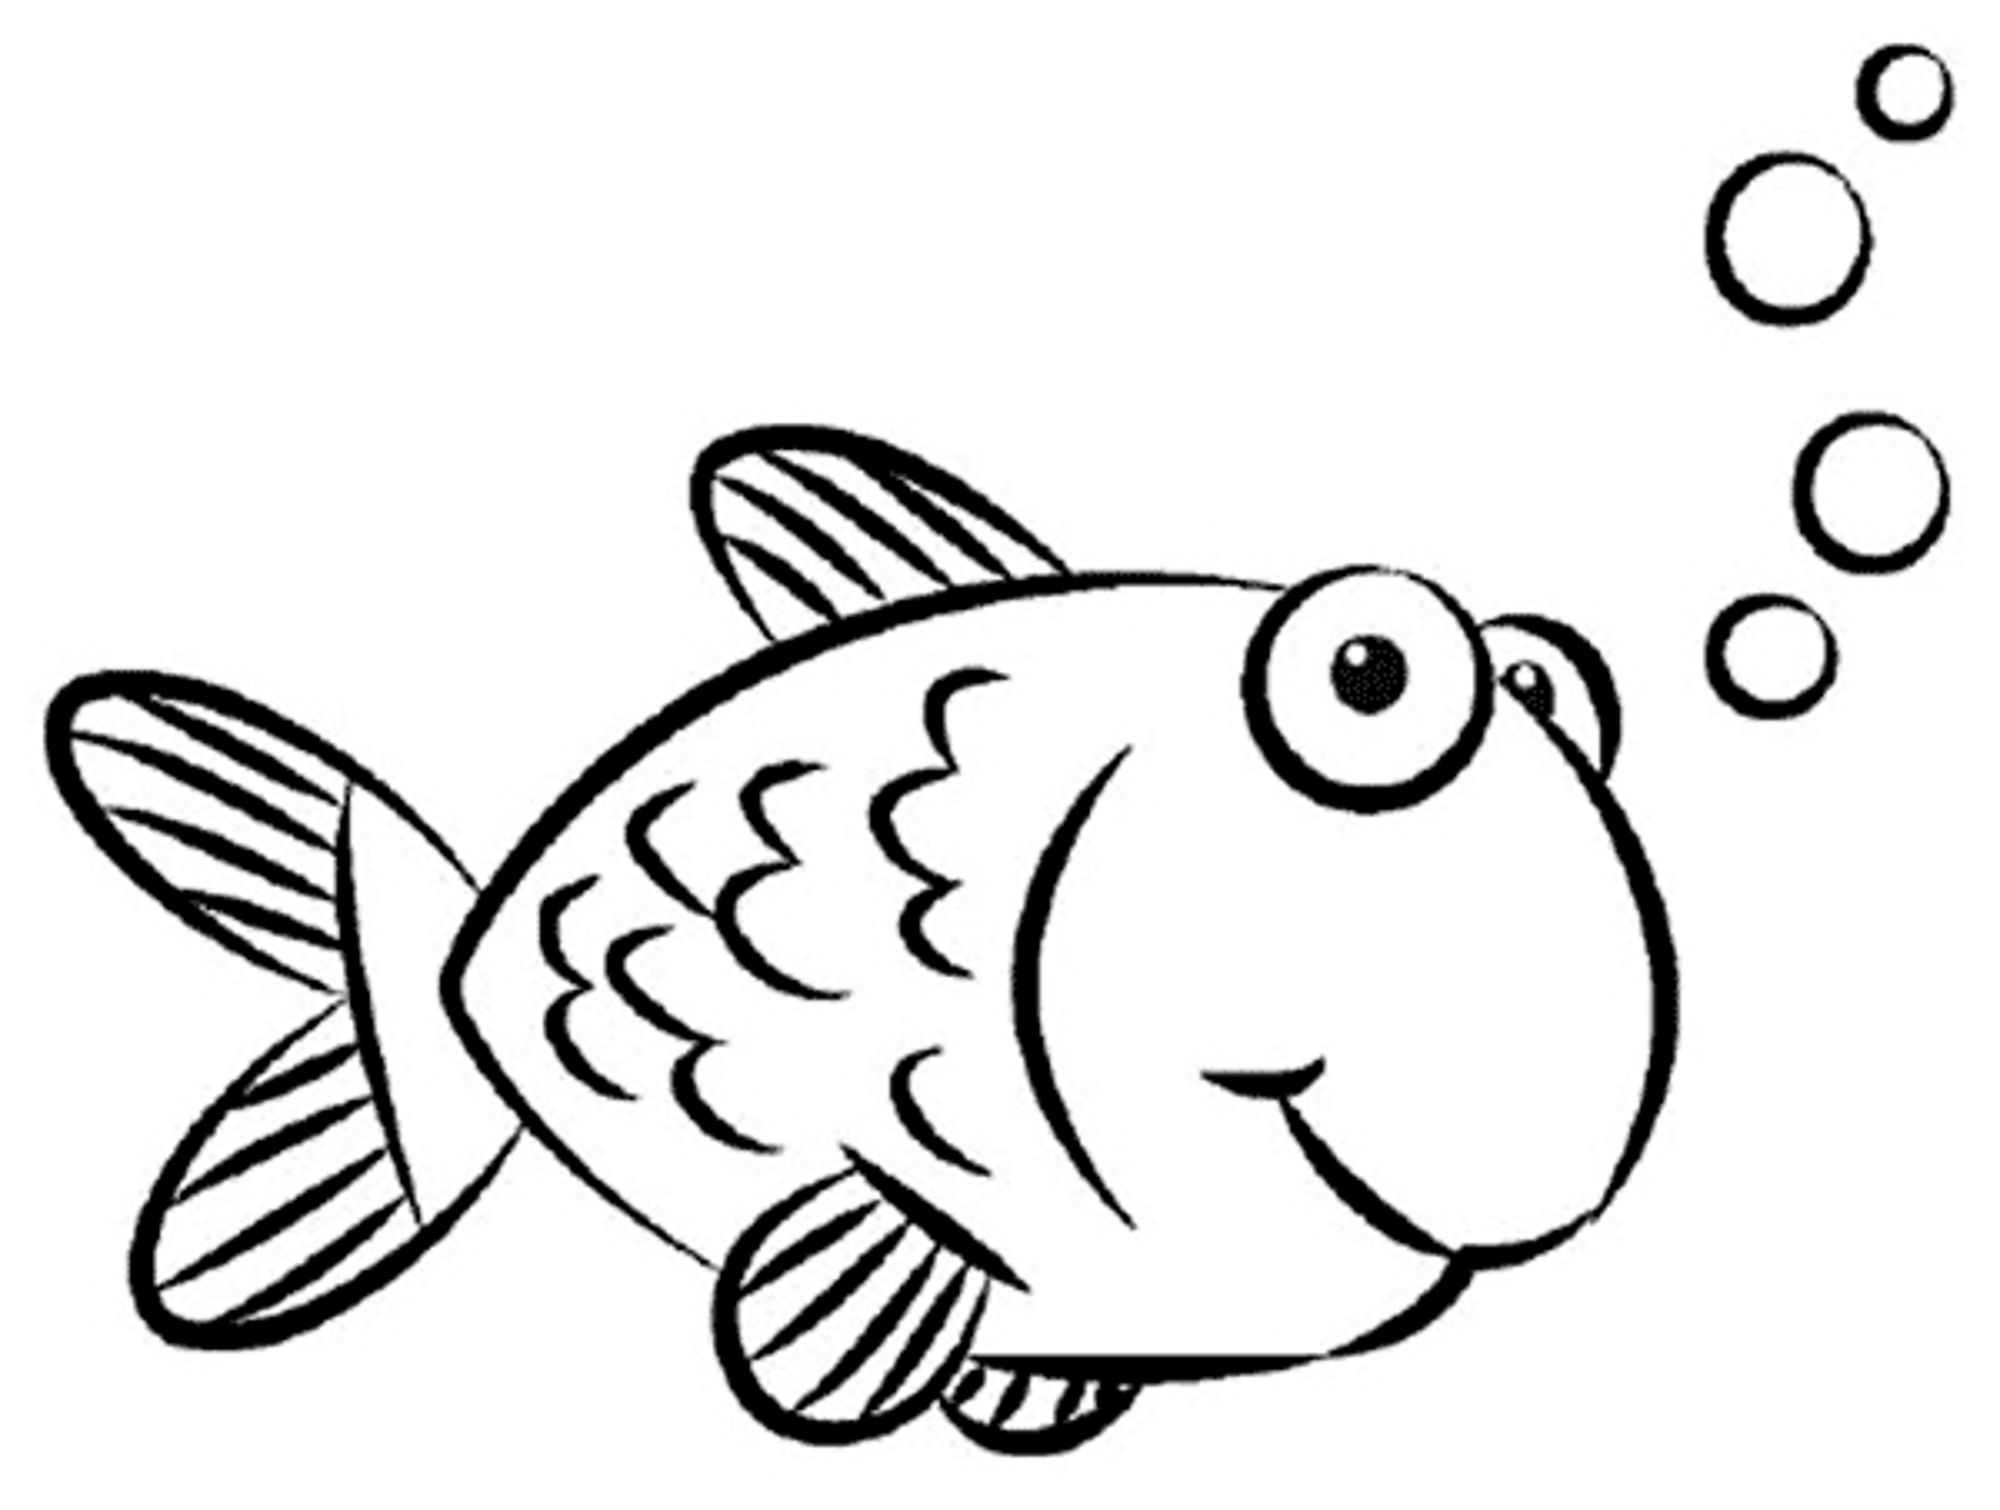 Fish Drawing Images at GetDrawings.com | Free for personal use Fish ...